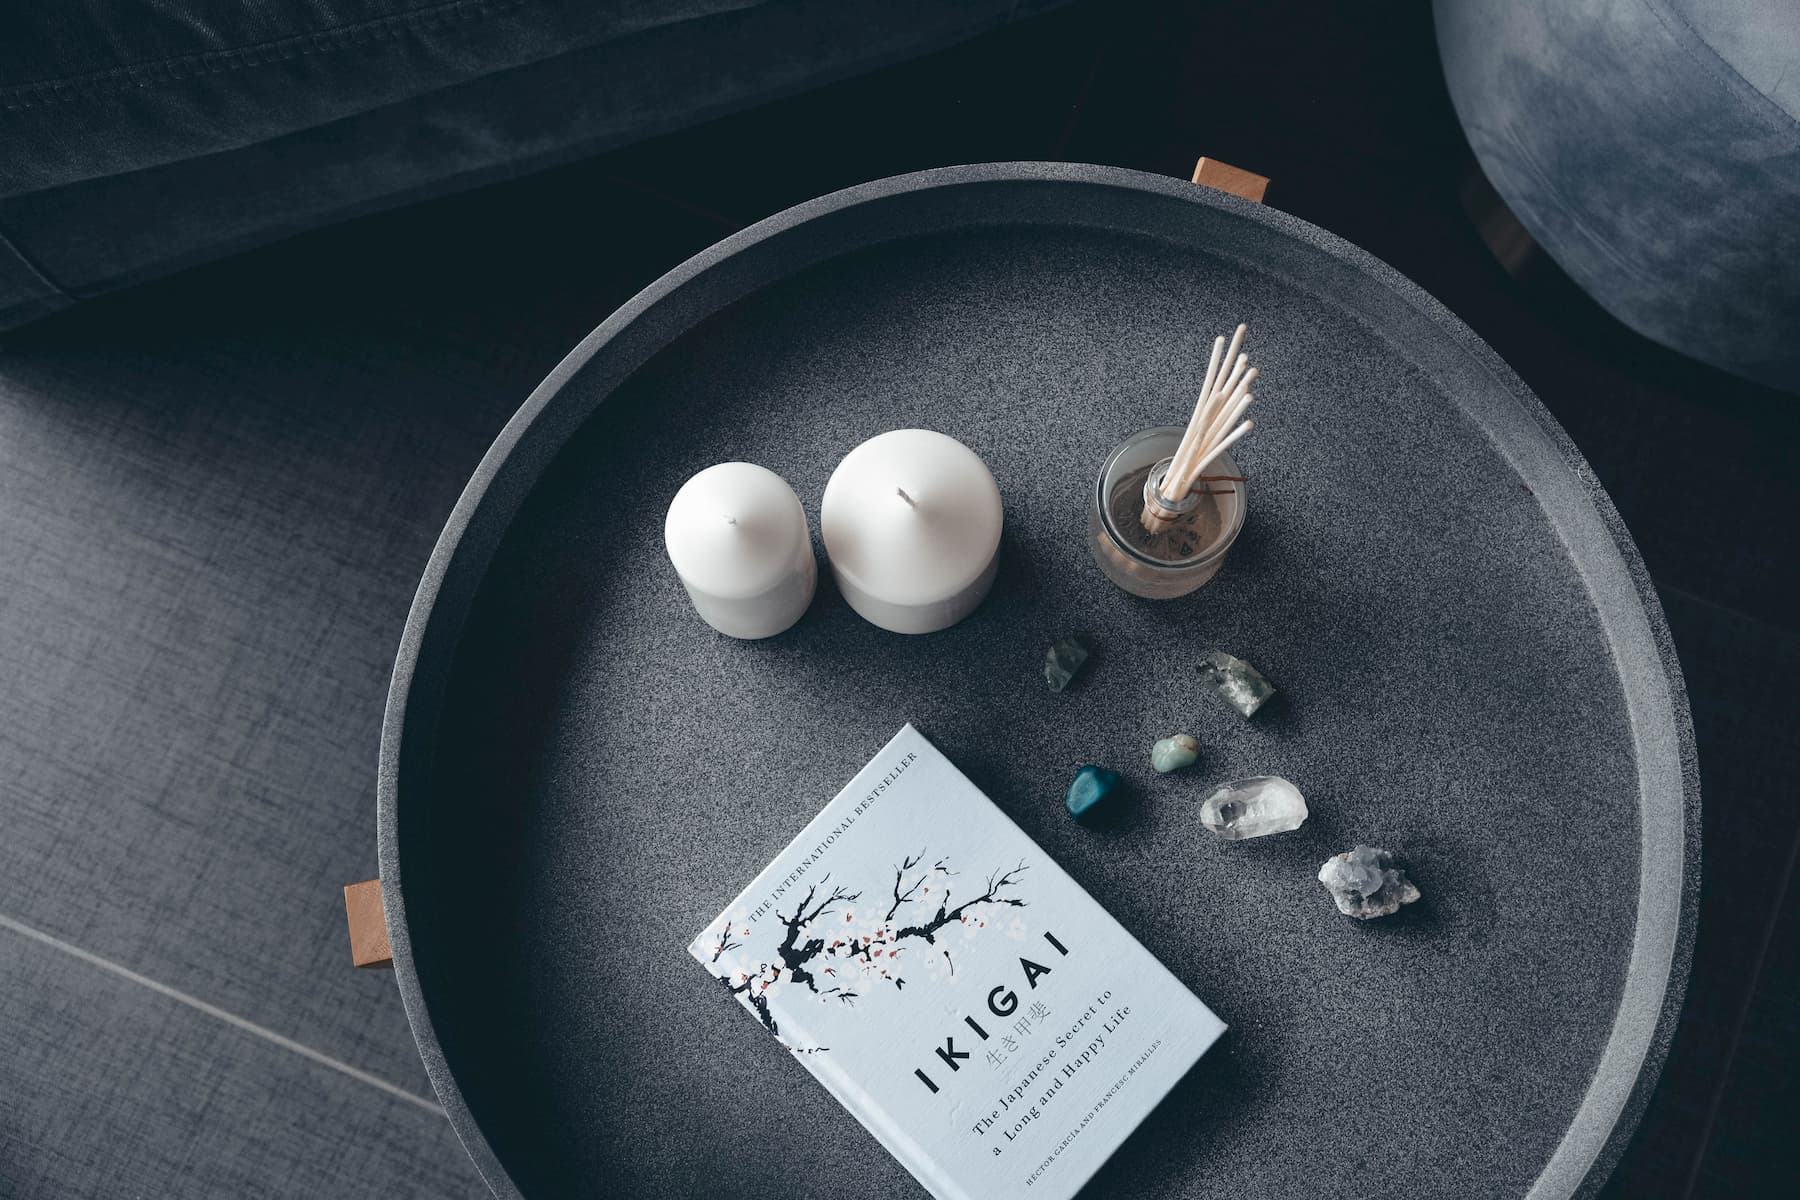 White candles and a book about happy life are neatly arranged on a gray table / tray.